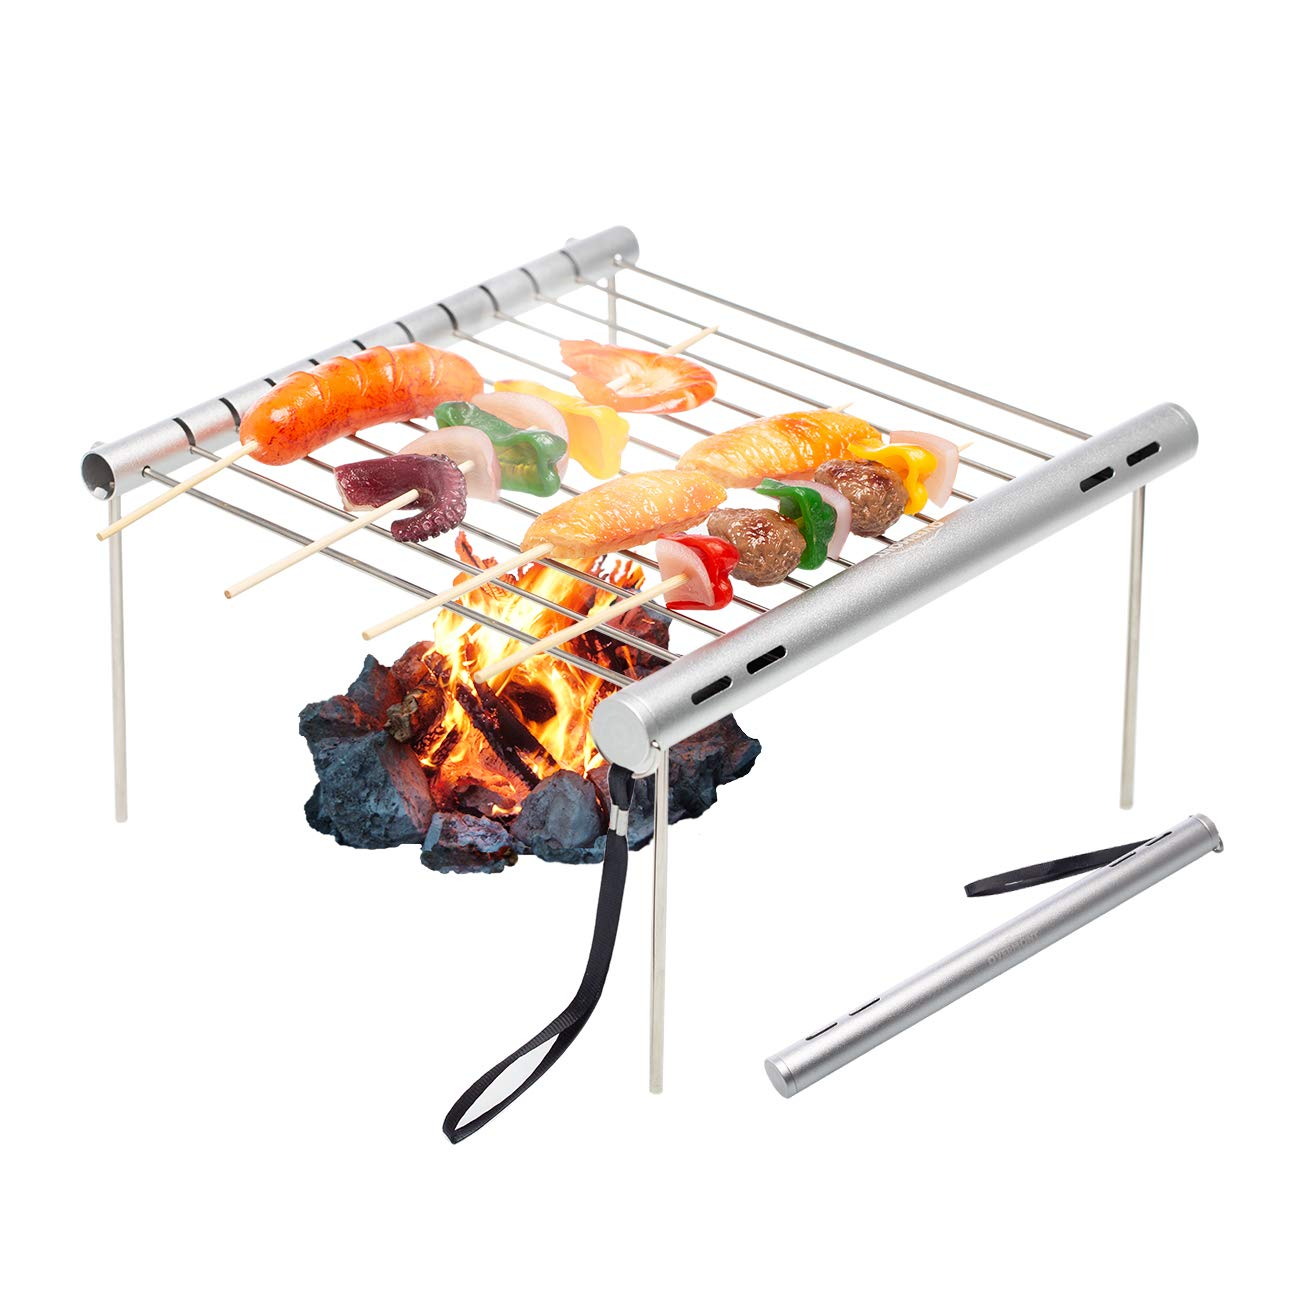 Overmont Barbecue Grill Portable Foldable BBQ Stand Charcoal Shelf Grate Galvanized Feet Home Camping